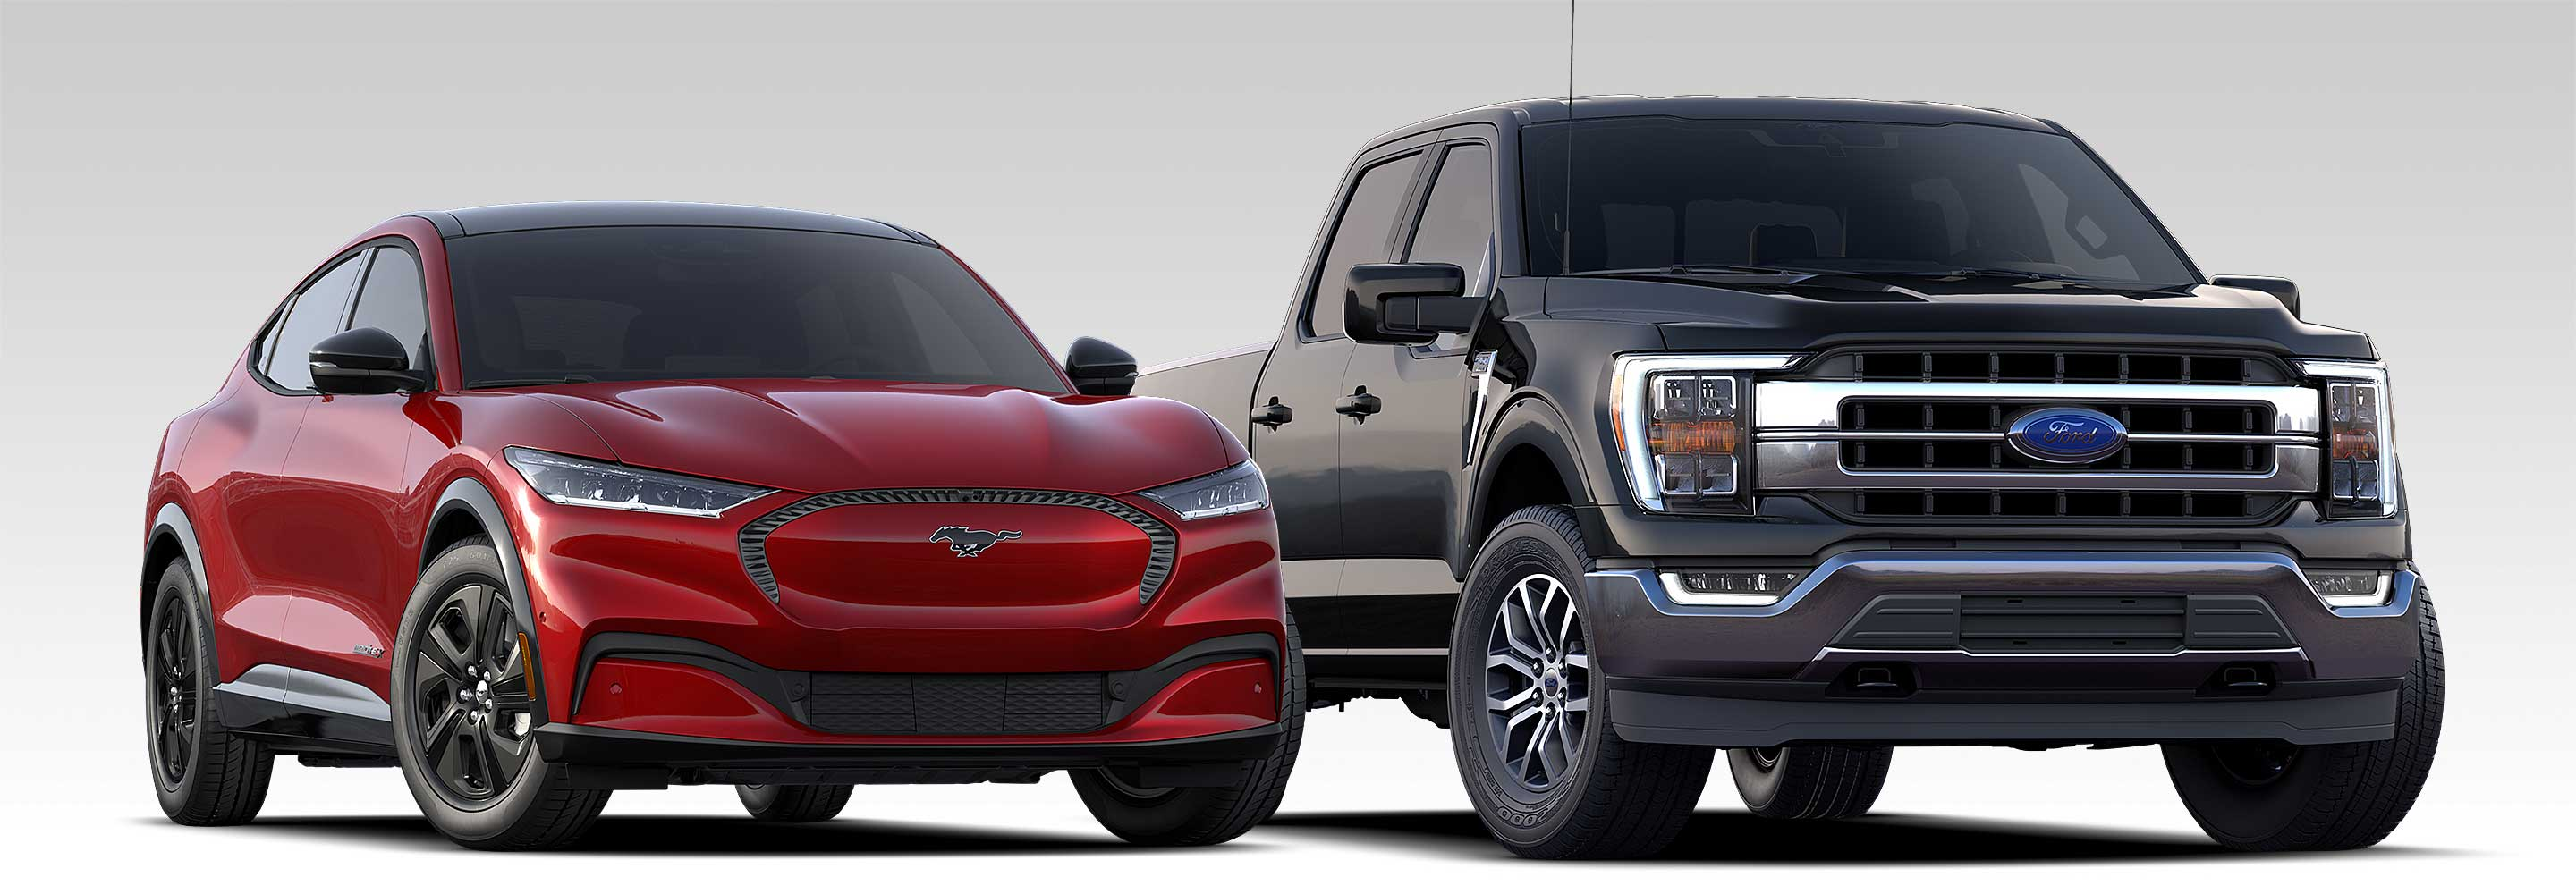 2021 Ford F-150 and Mustang Mach-E Take Home Truck and Utility Vehicle of the Year Awards